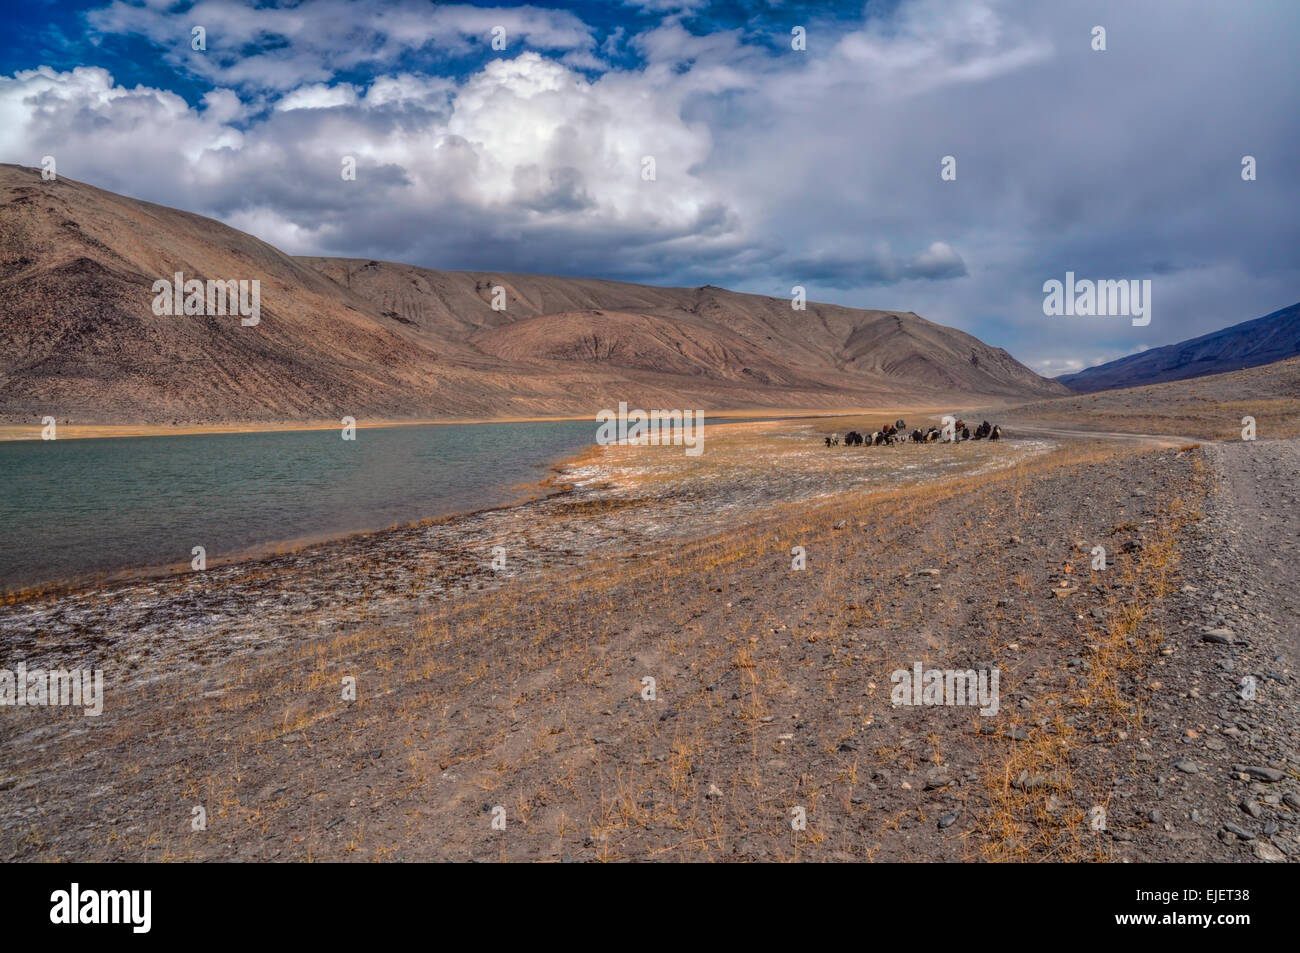 Herd of yaks by the river in Pamir mountains in Tajikistan - Stock Image